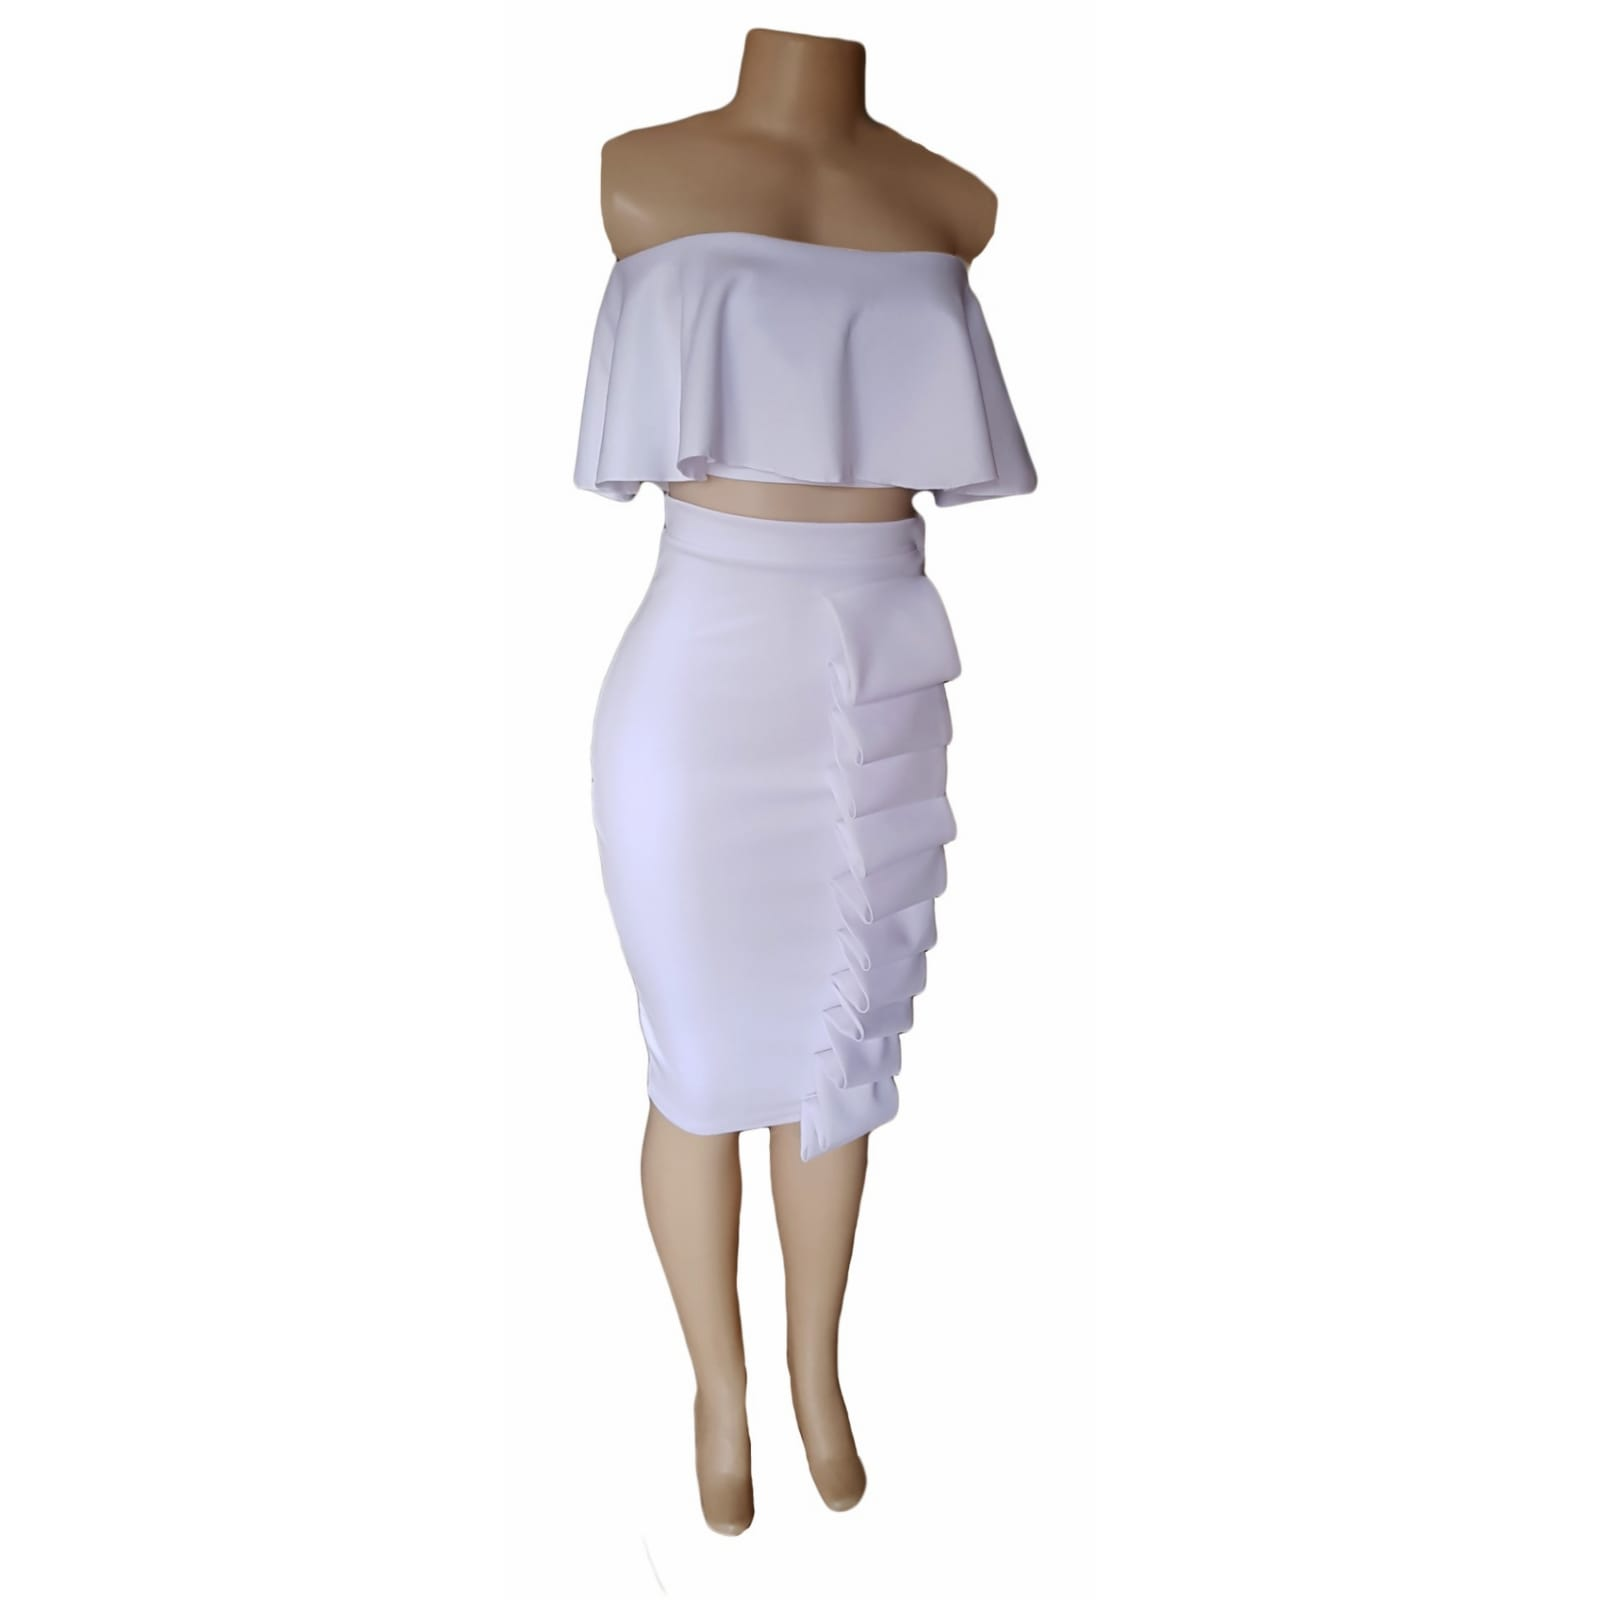 2 piece white smart casual wear 1 2 piece white smart casual wear. Crop boob tube frilled top with tight fitting below the knee skirt detailed with folds.